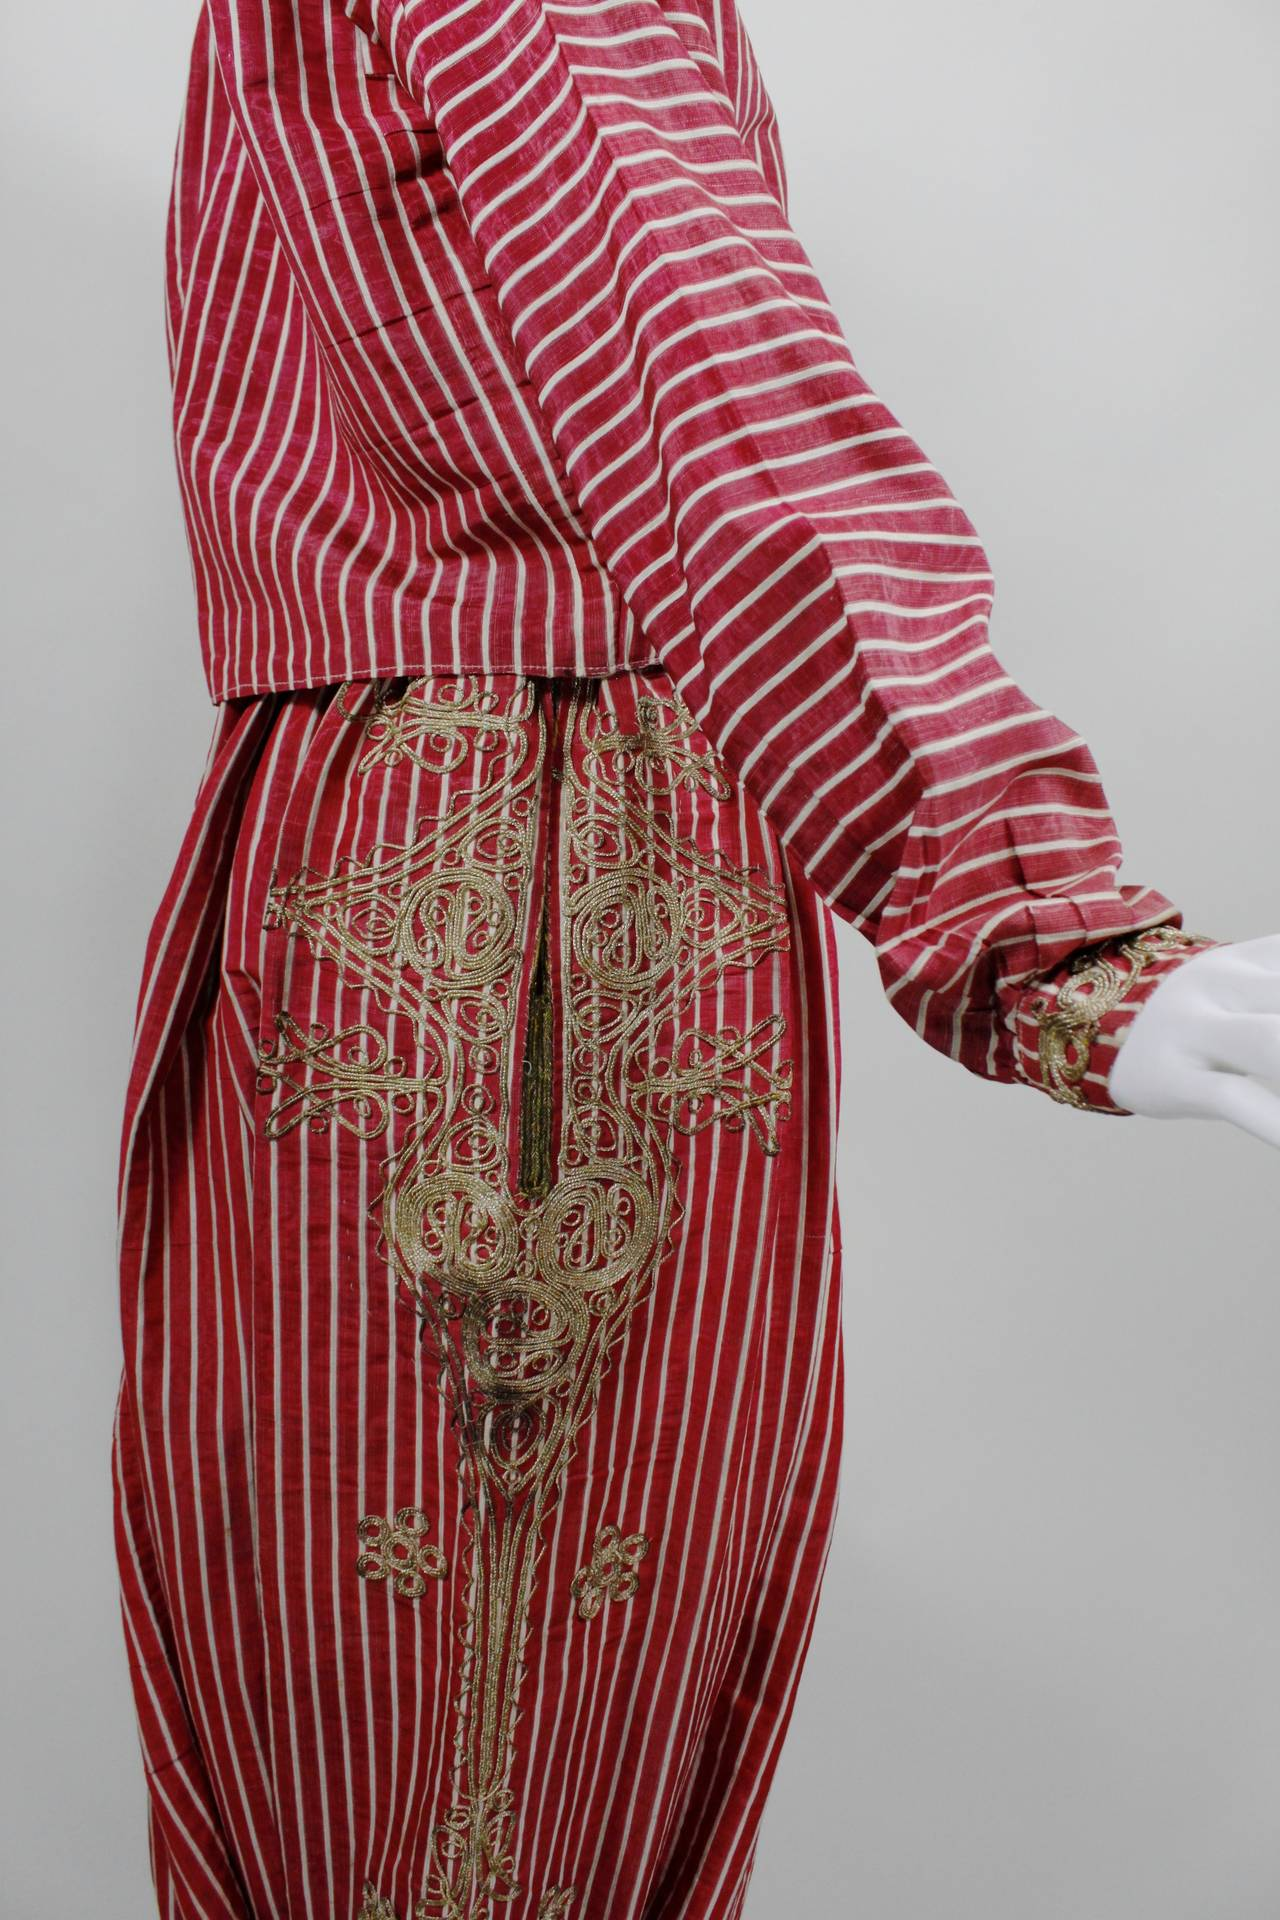 Turkish Silk Moire Striped Harem Pant Ensemble with Bullion Embroidery 6